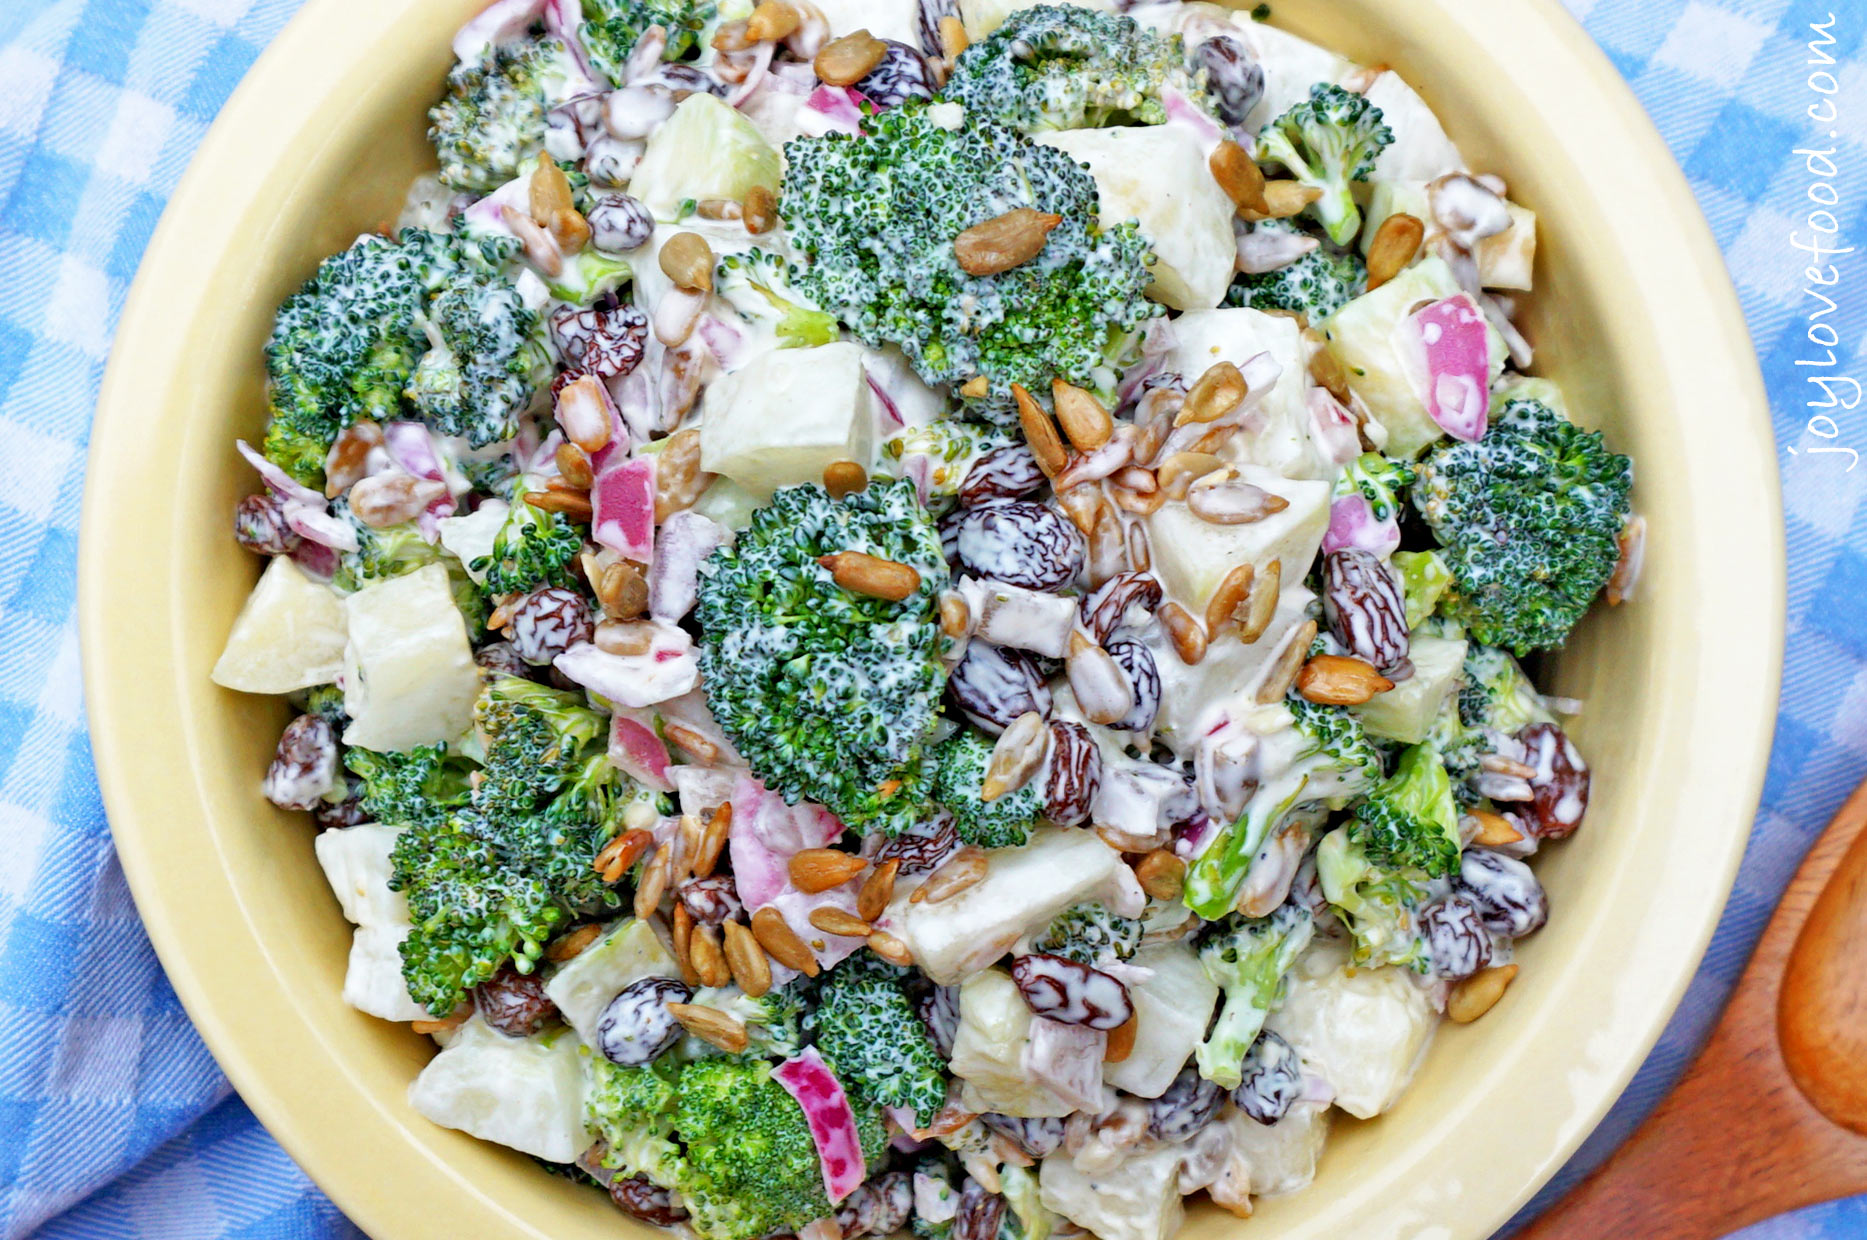 Broccoli with Onion, Bacon and Tomato advise